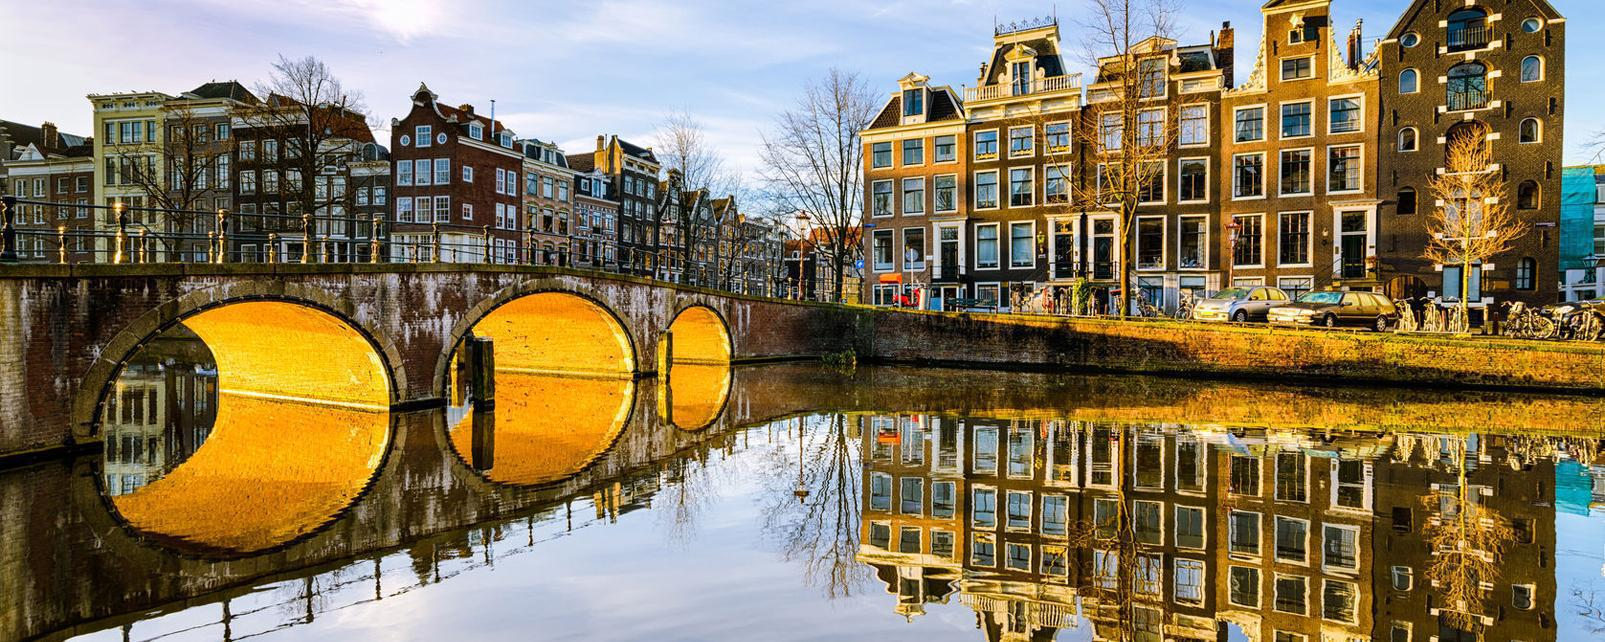 Best Months To Travel To Amsterdam